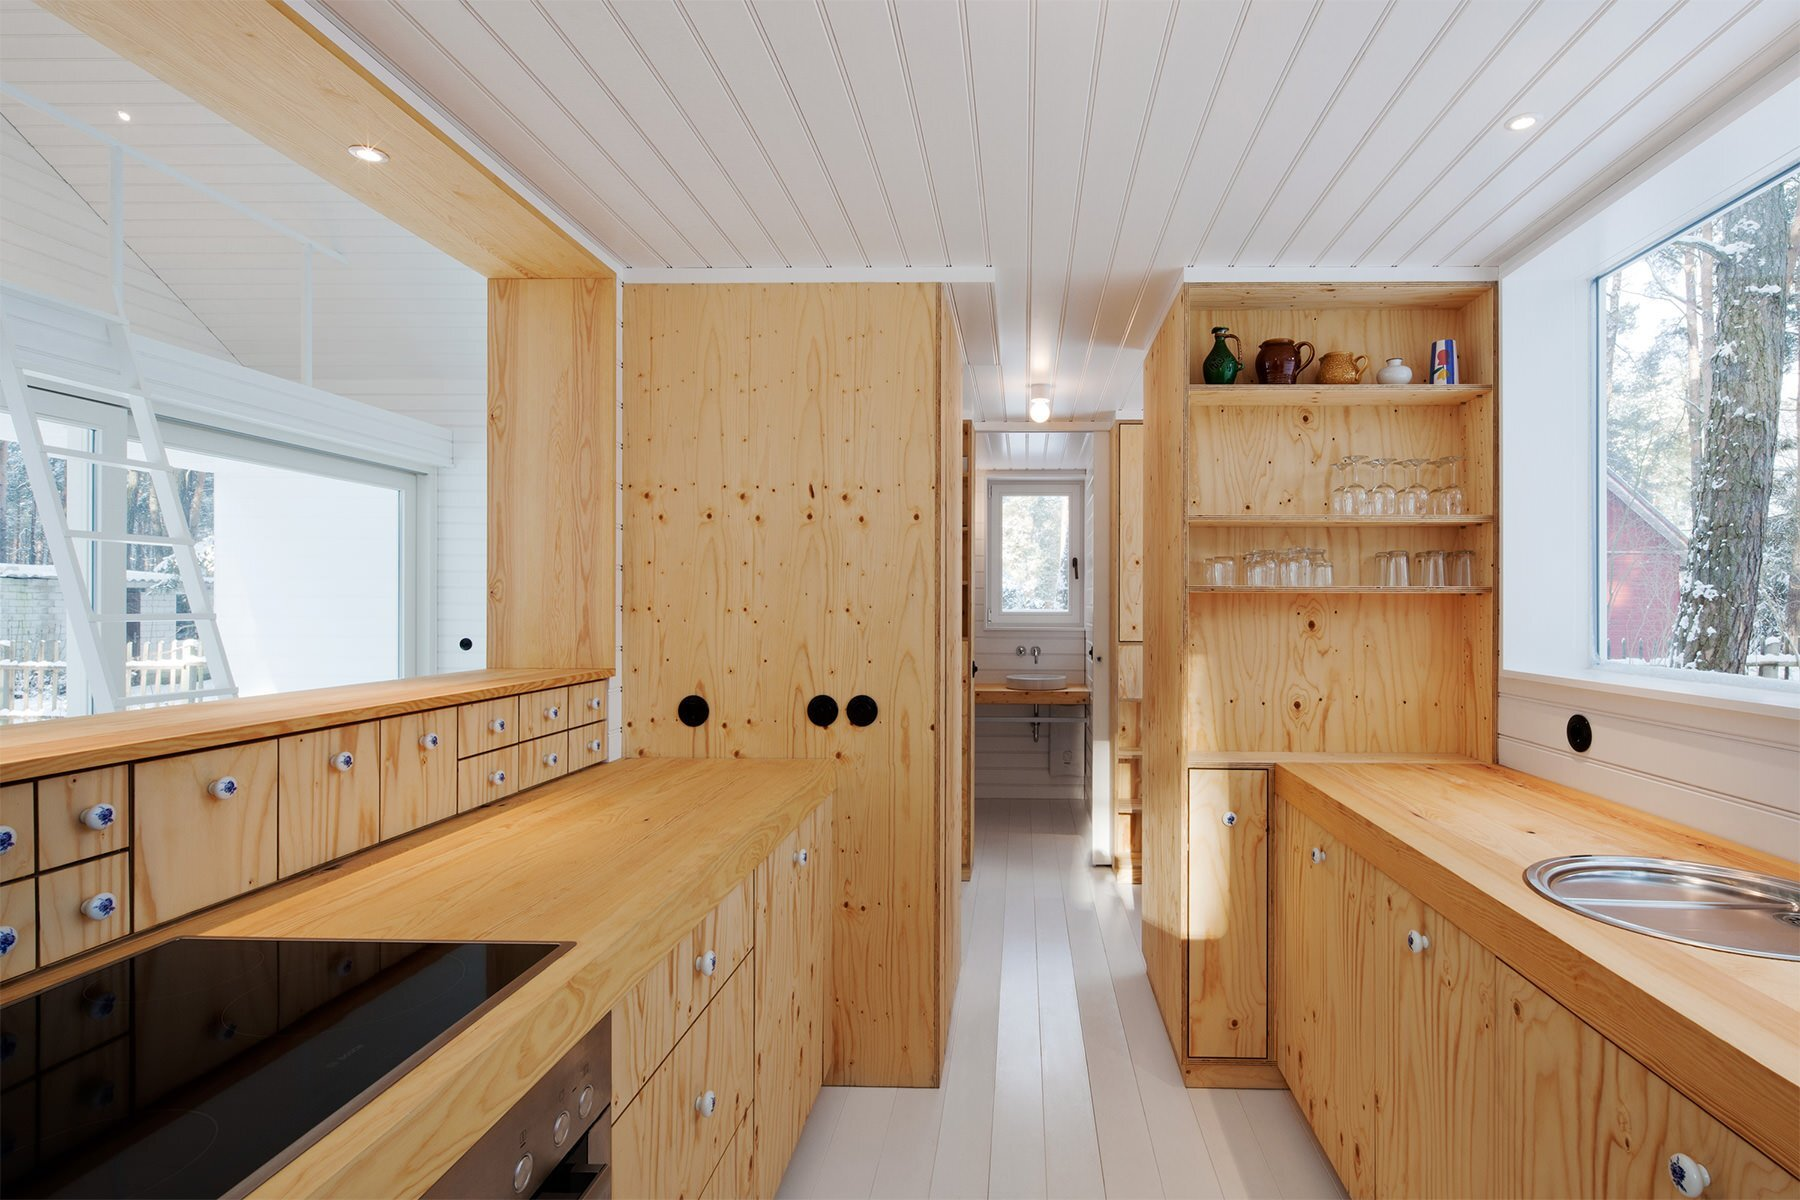 Waldhaus -Small Cabin - Brandenburg - Atelier-ST - Kitchen - Humble Homes